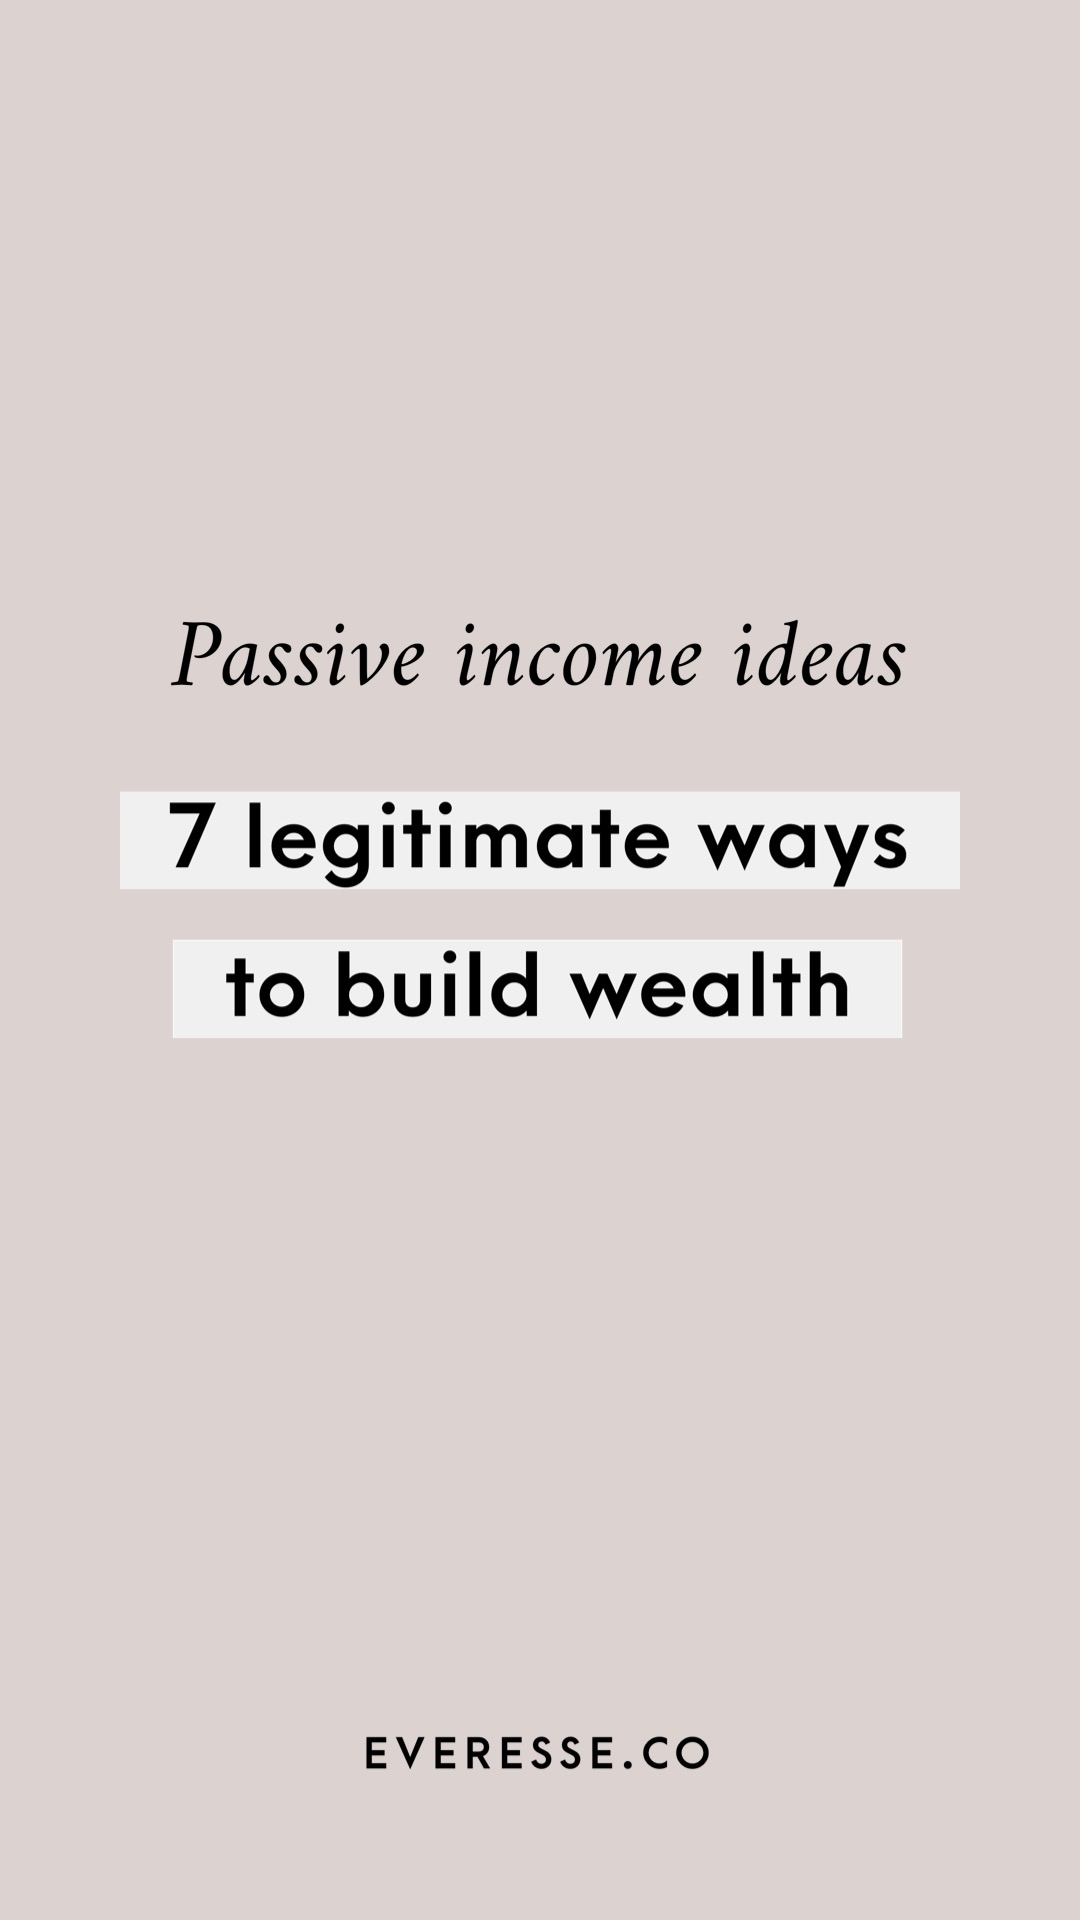 Passive income ideas: 7 legitimate ways to build wealth